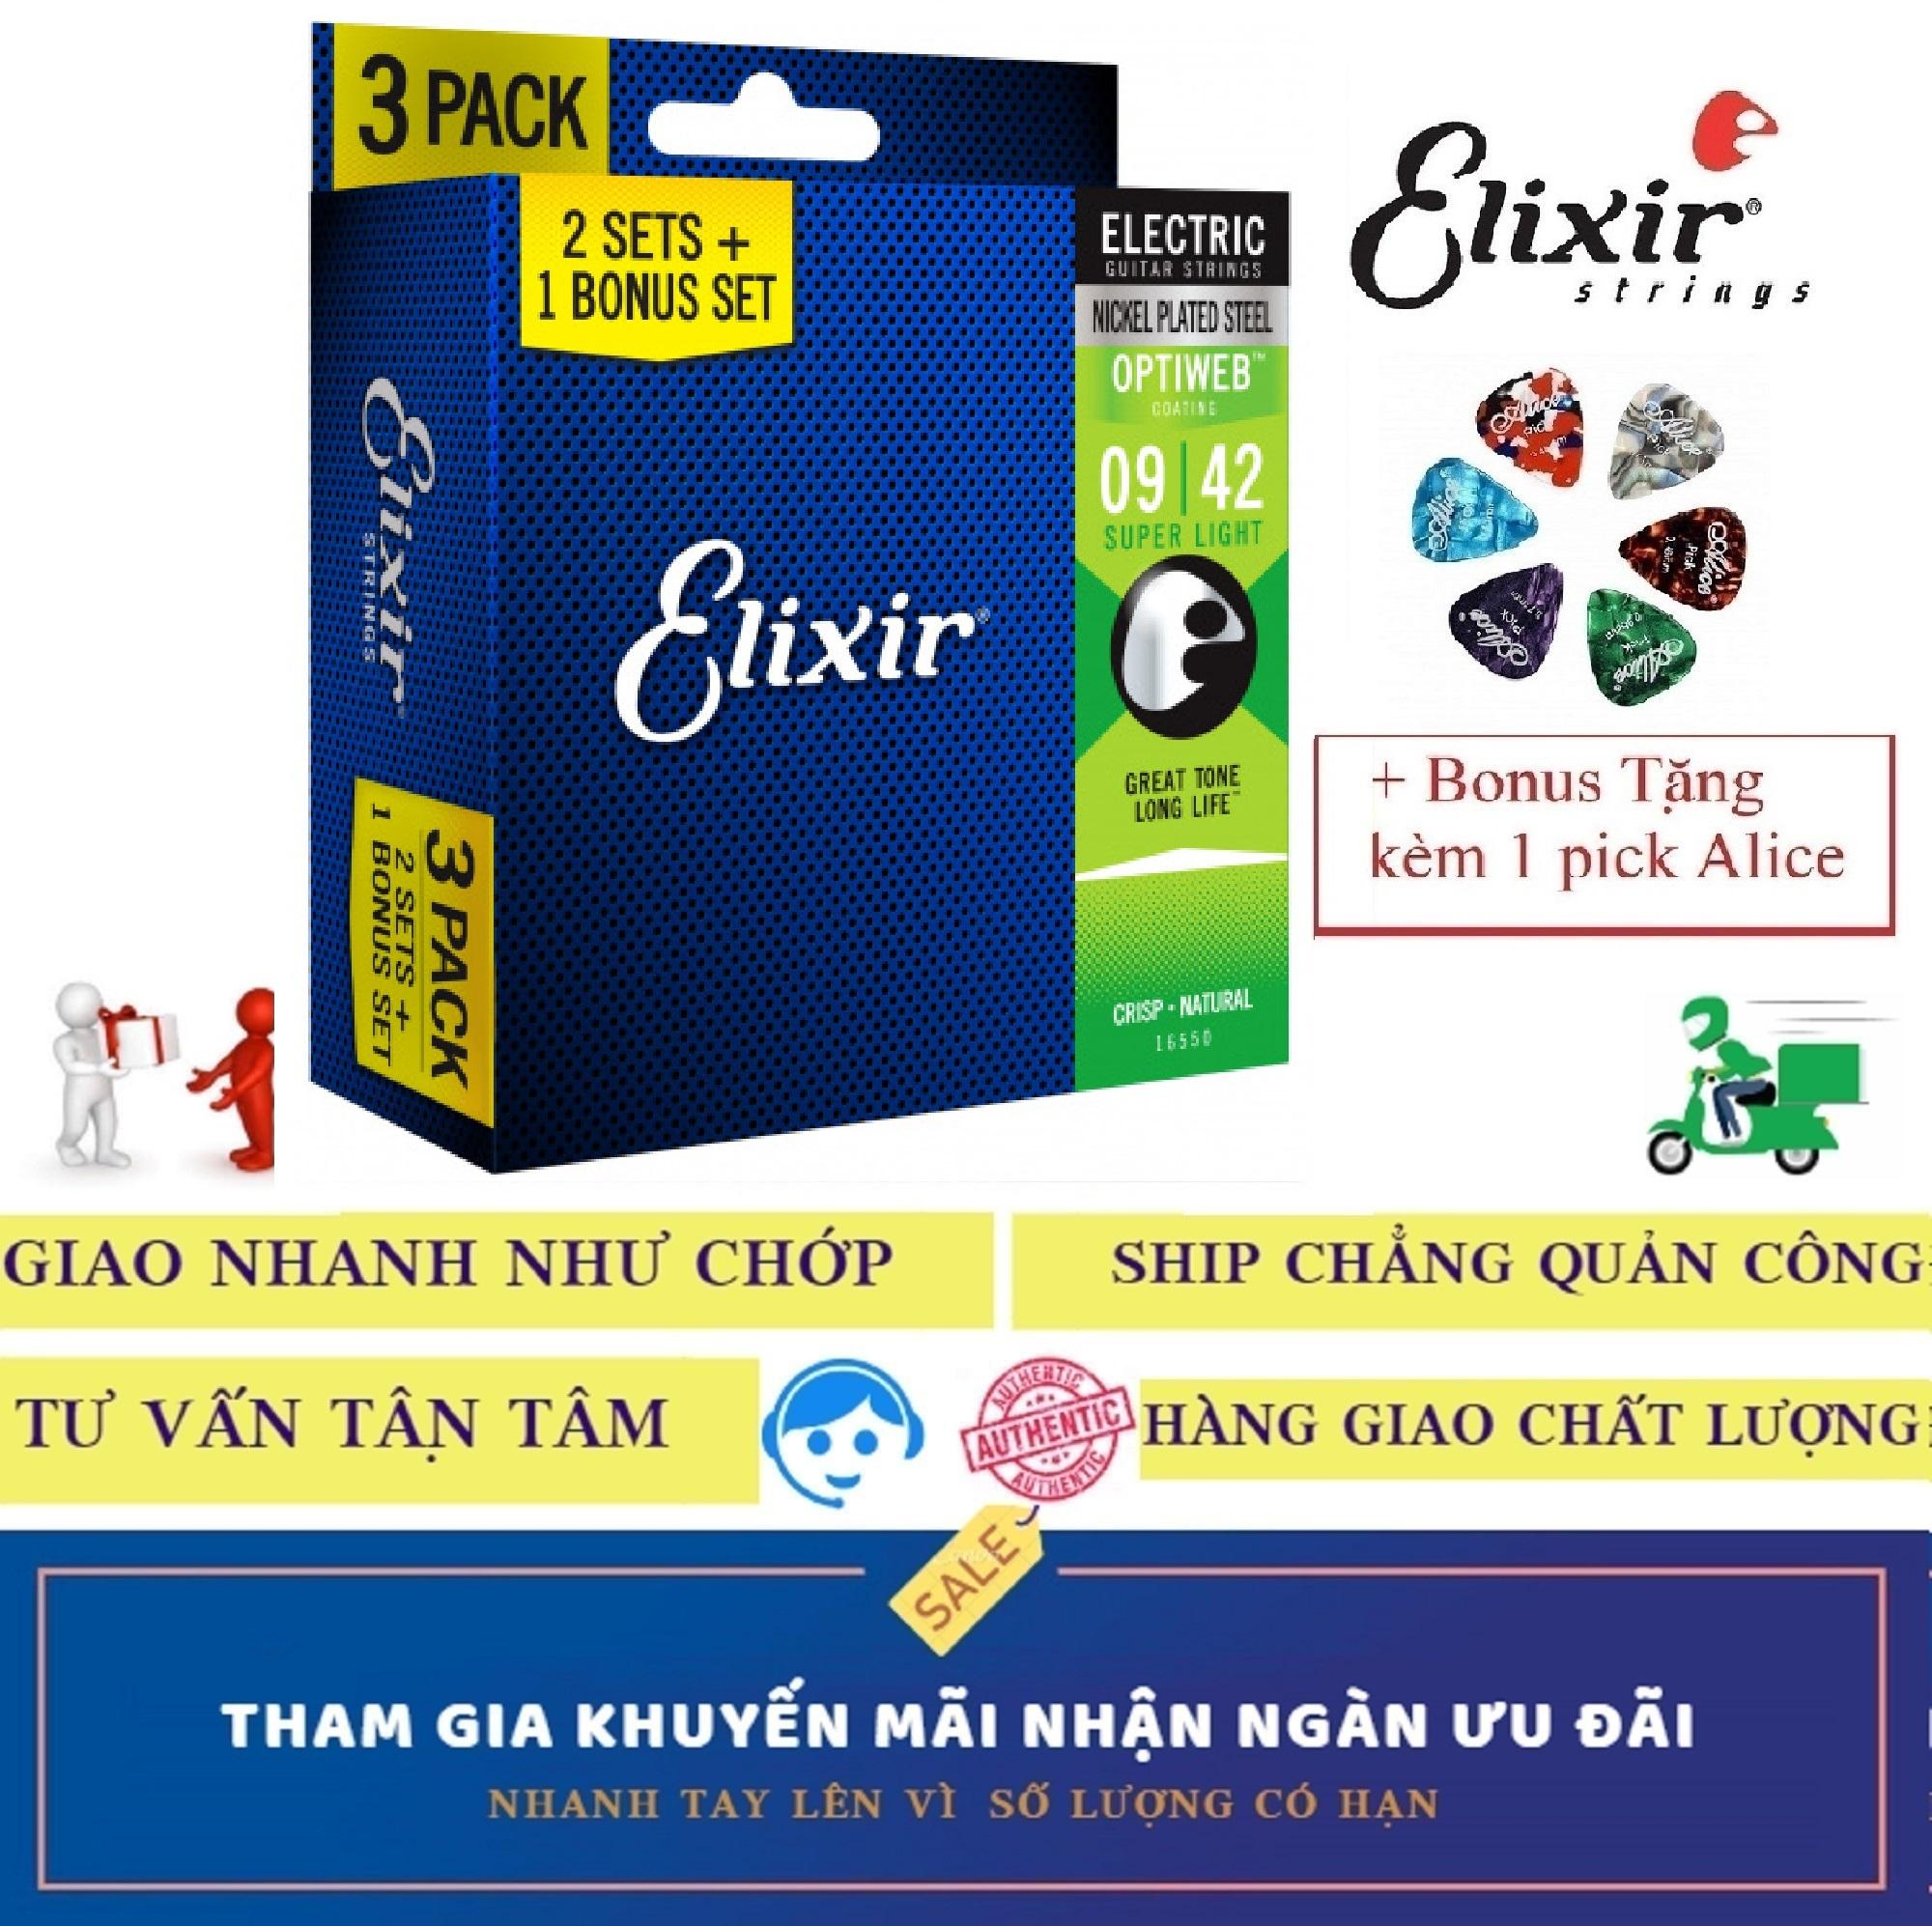 Combo Pack 3 Bộ Dây Đàn Elixir cao cấp 16550 (Cỡ 9) Electric Guitar điện Nickel Plated Steel With OPTIWEB COATING Strings